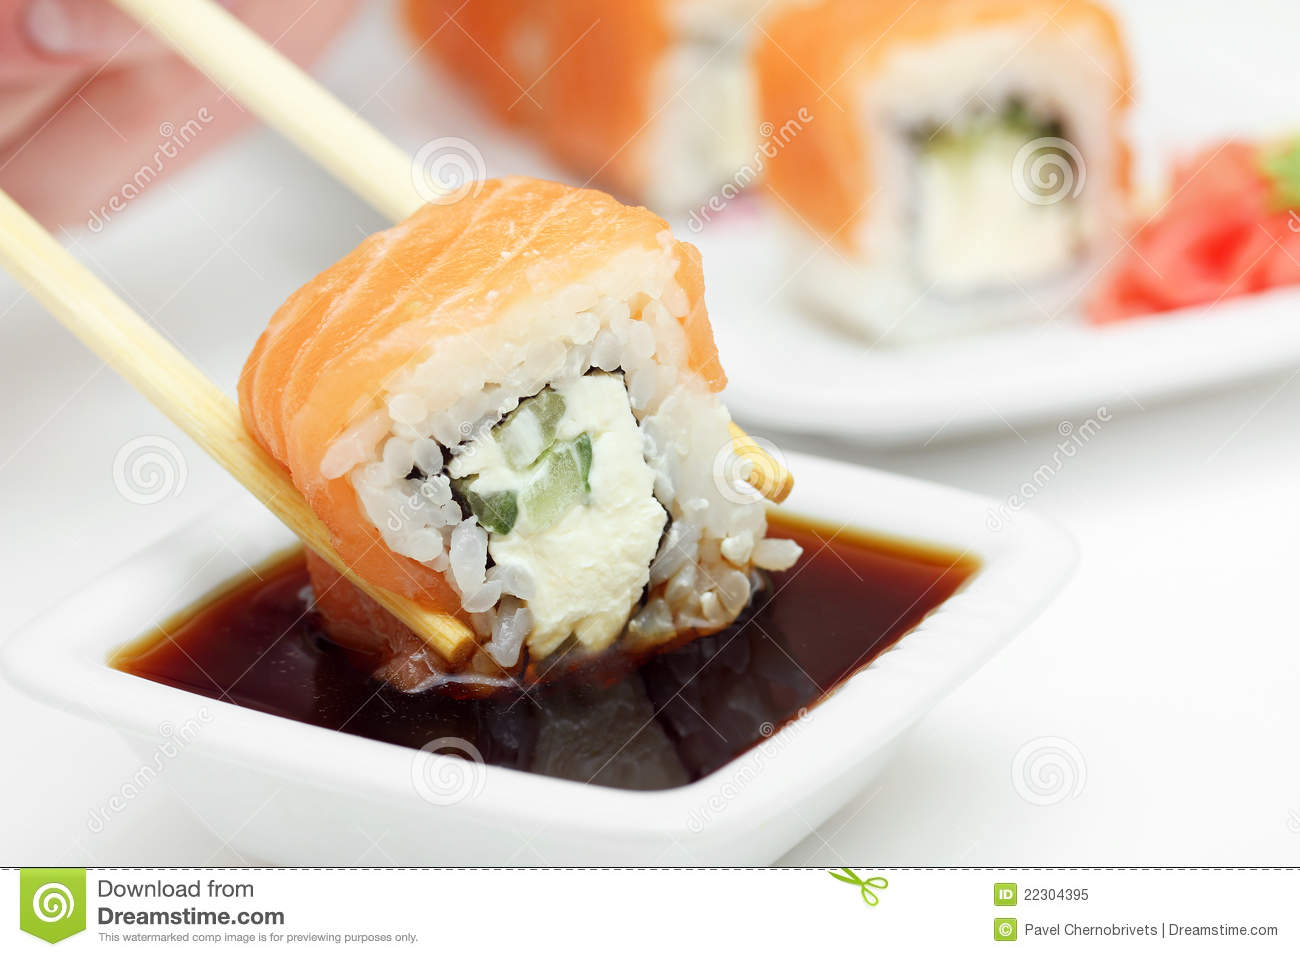 Sushi Roll In Chopsticks In Soy Sauce Stock Image - Image ...